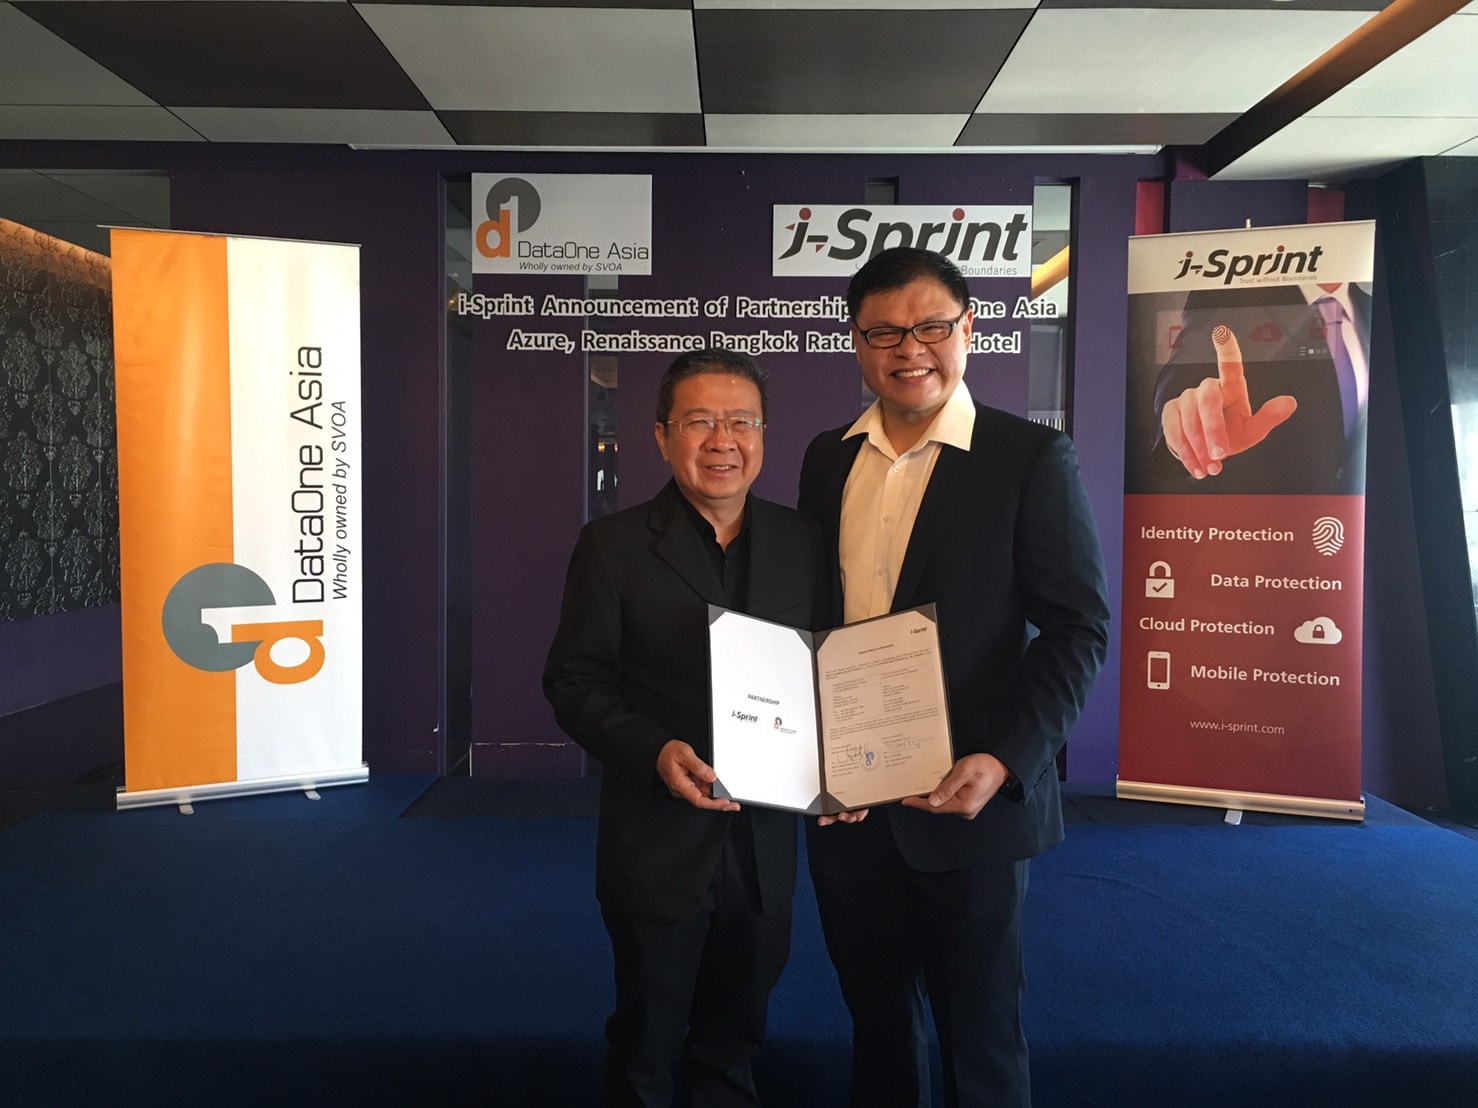 i-sprint dataone asia partnership